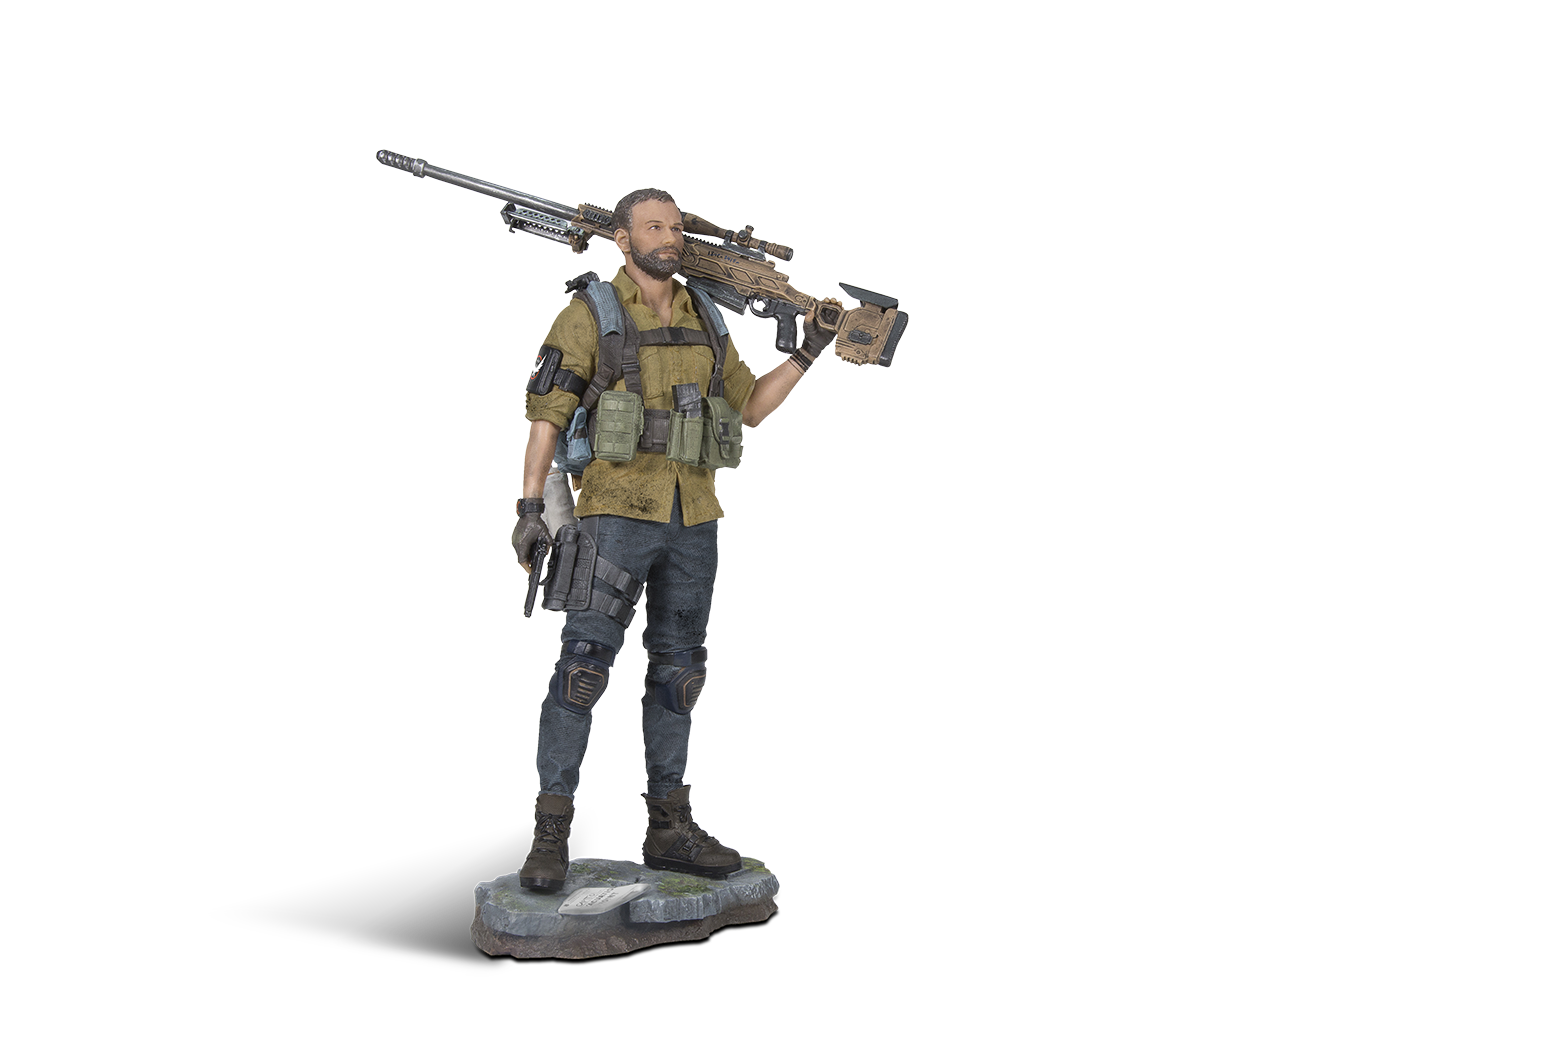 Tom Clancy's - The Division 2: Brian Johnson Figurine